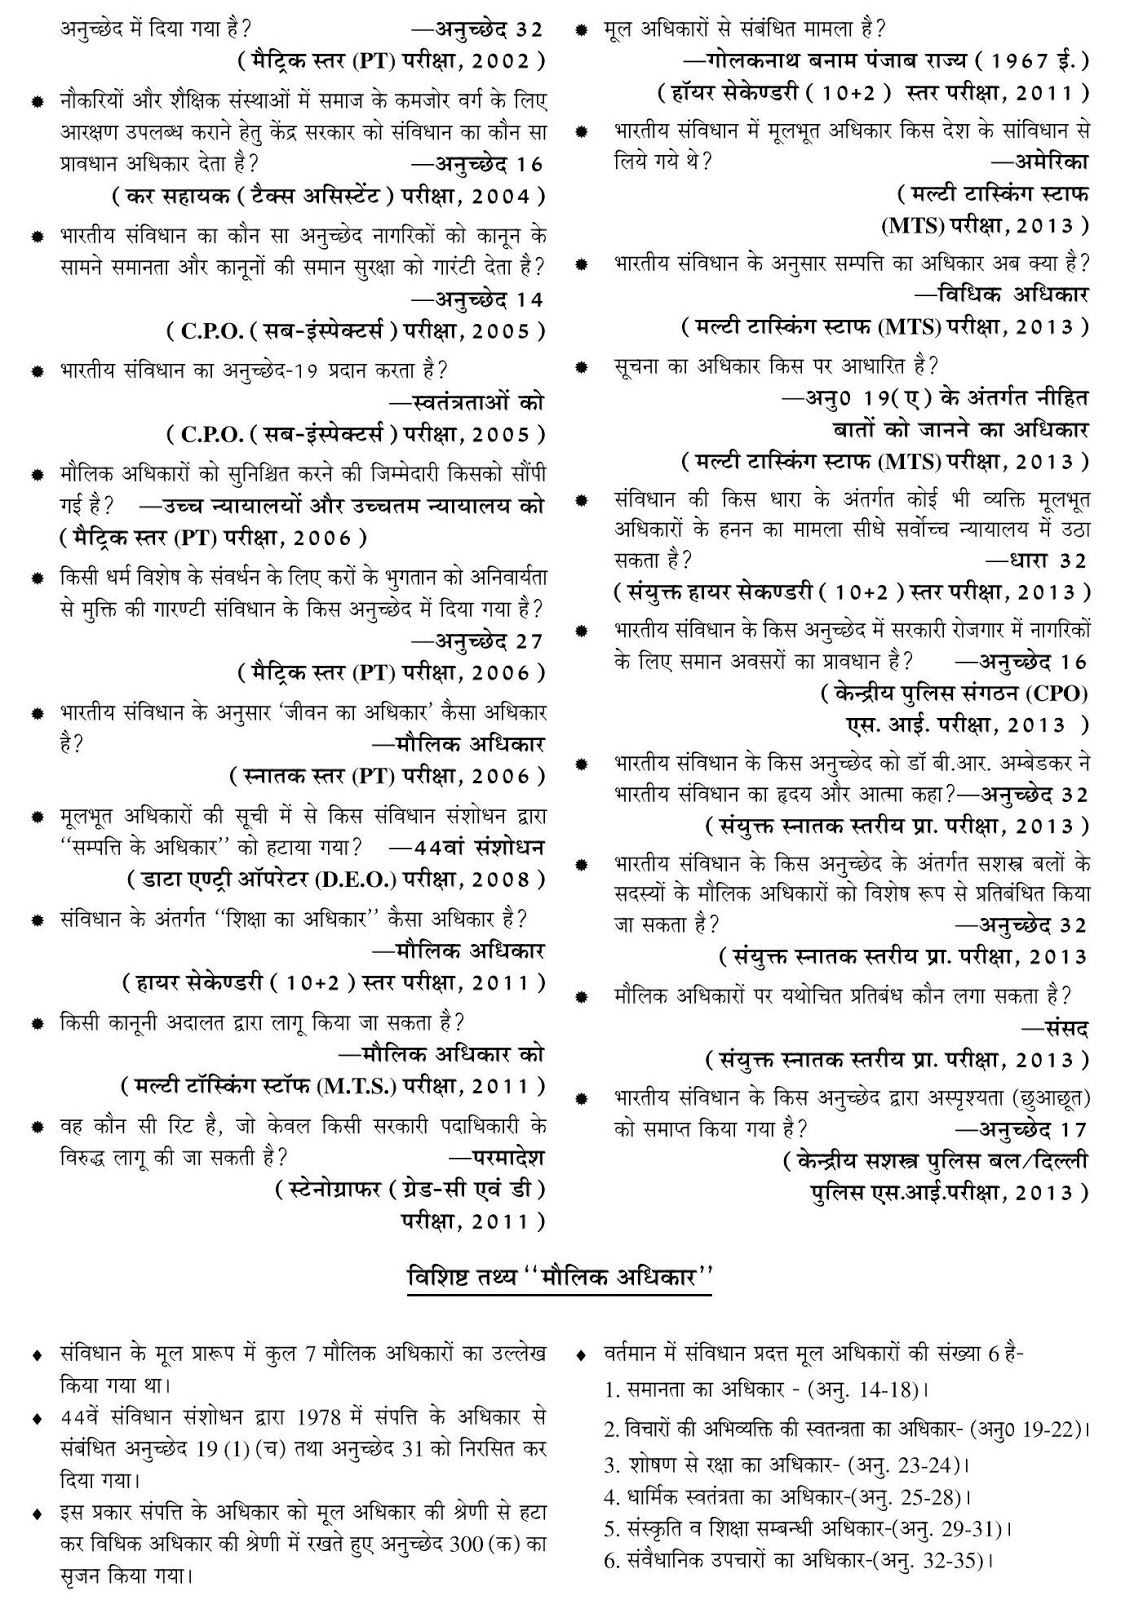 Indian Constitution General Knowledge Questions And Answers In 2020 Indian Constitution General Knowledge Gk Questions And Answers